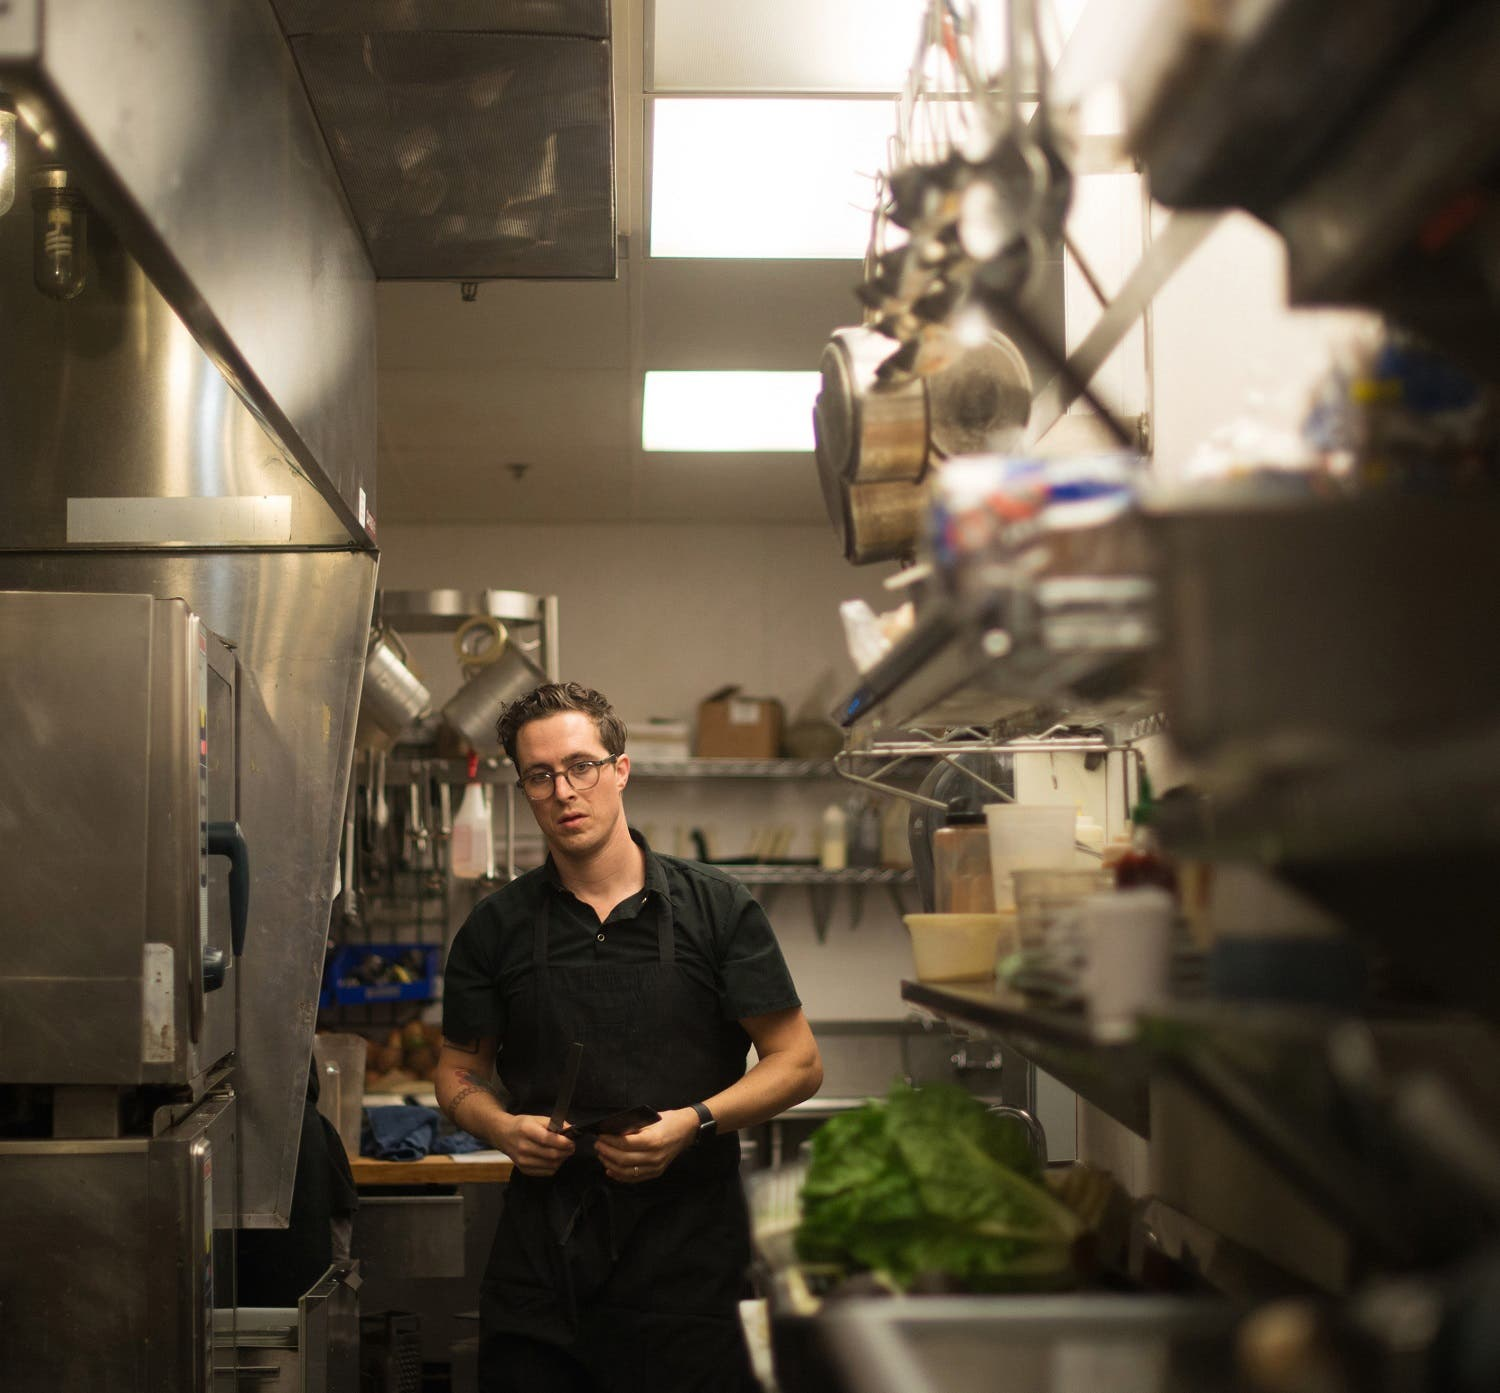 """In this April 30, 2016 photo, chef Ray Roberts, who runs multiple Peoples Organic restaurants with his wife in the Twin Cities, prepares meals at his Edina, Minn., location. Roberts was the personal chef for music megastar Prince until he was found dead on April 21, 2016. """"It felt like he wasn't himself probably the last month or two,"""" Roberts said. """"I think he was just struggling with being sick a lot."""" (AP)"""